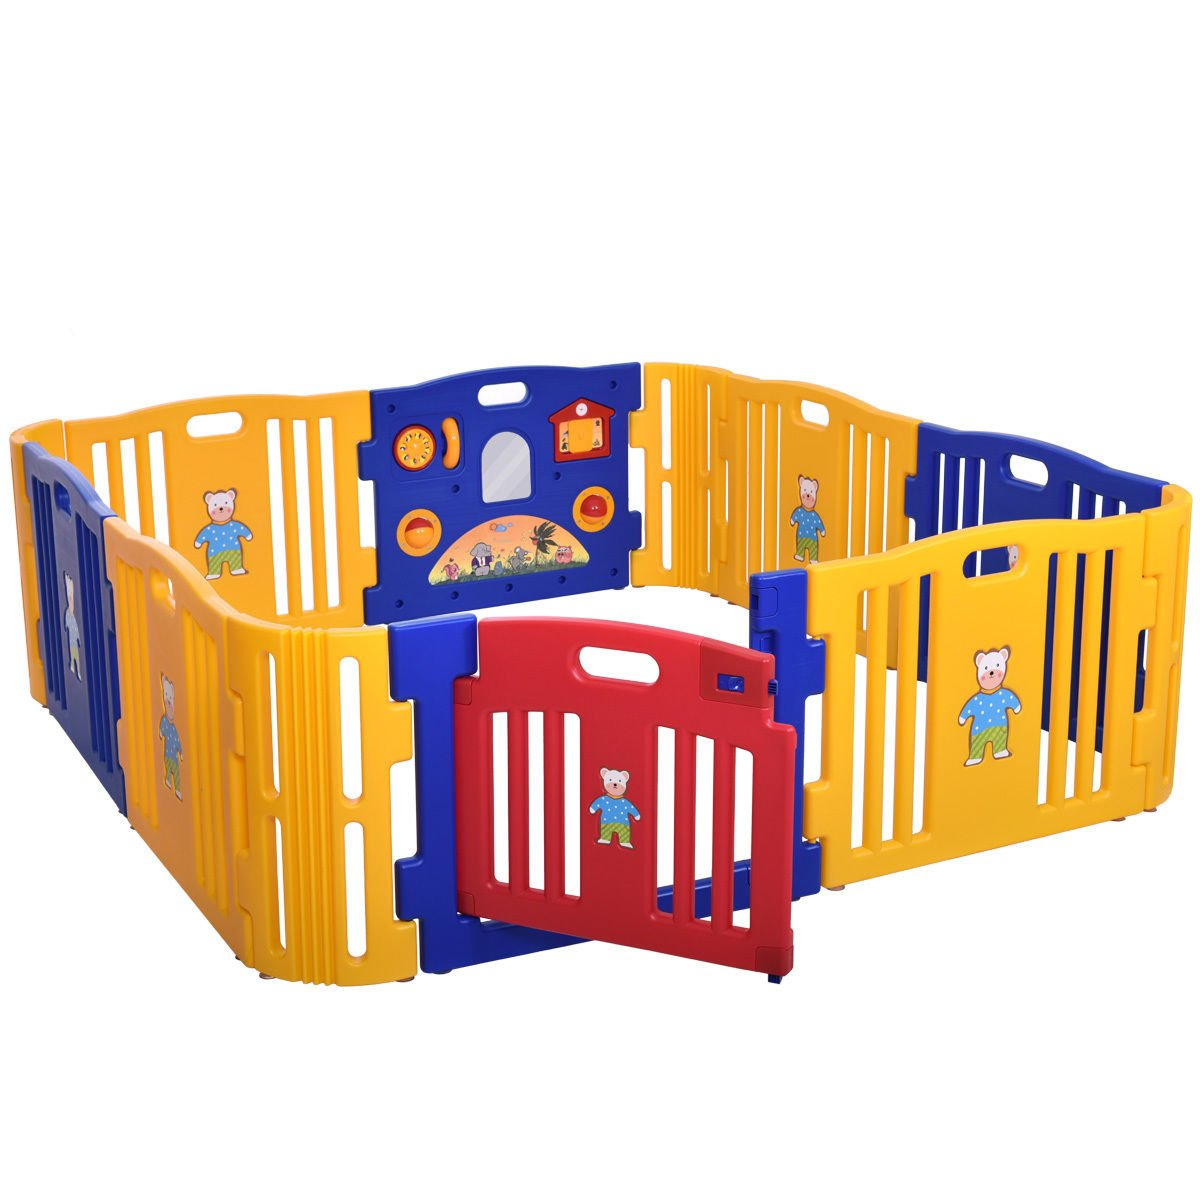 Baby Playpen Kids Safety Play Center Yard Home Indoor Outdoor New Pen By Scream Store 12 Panel